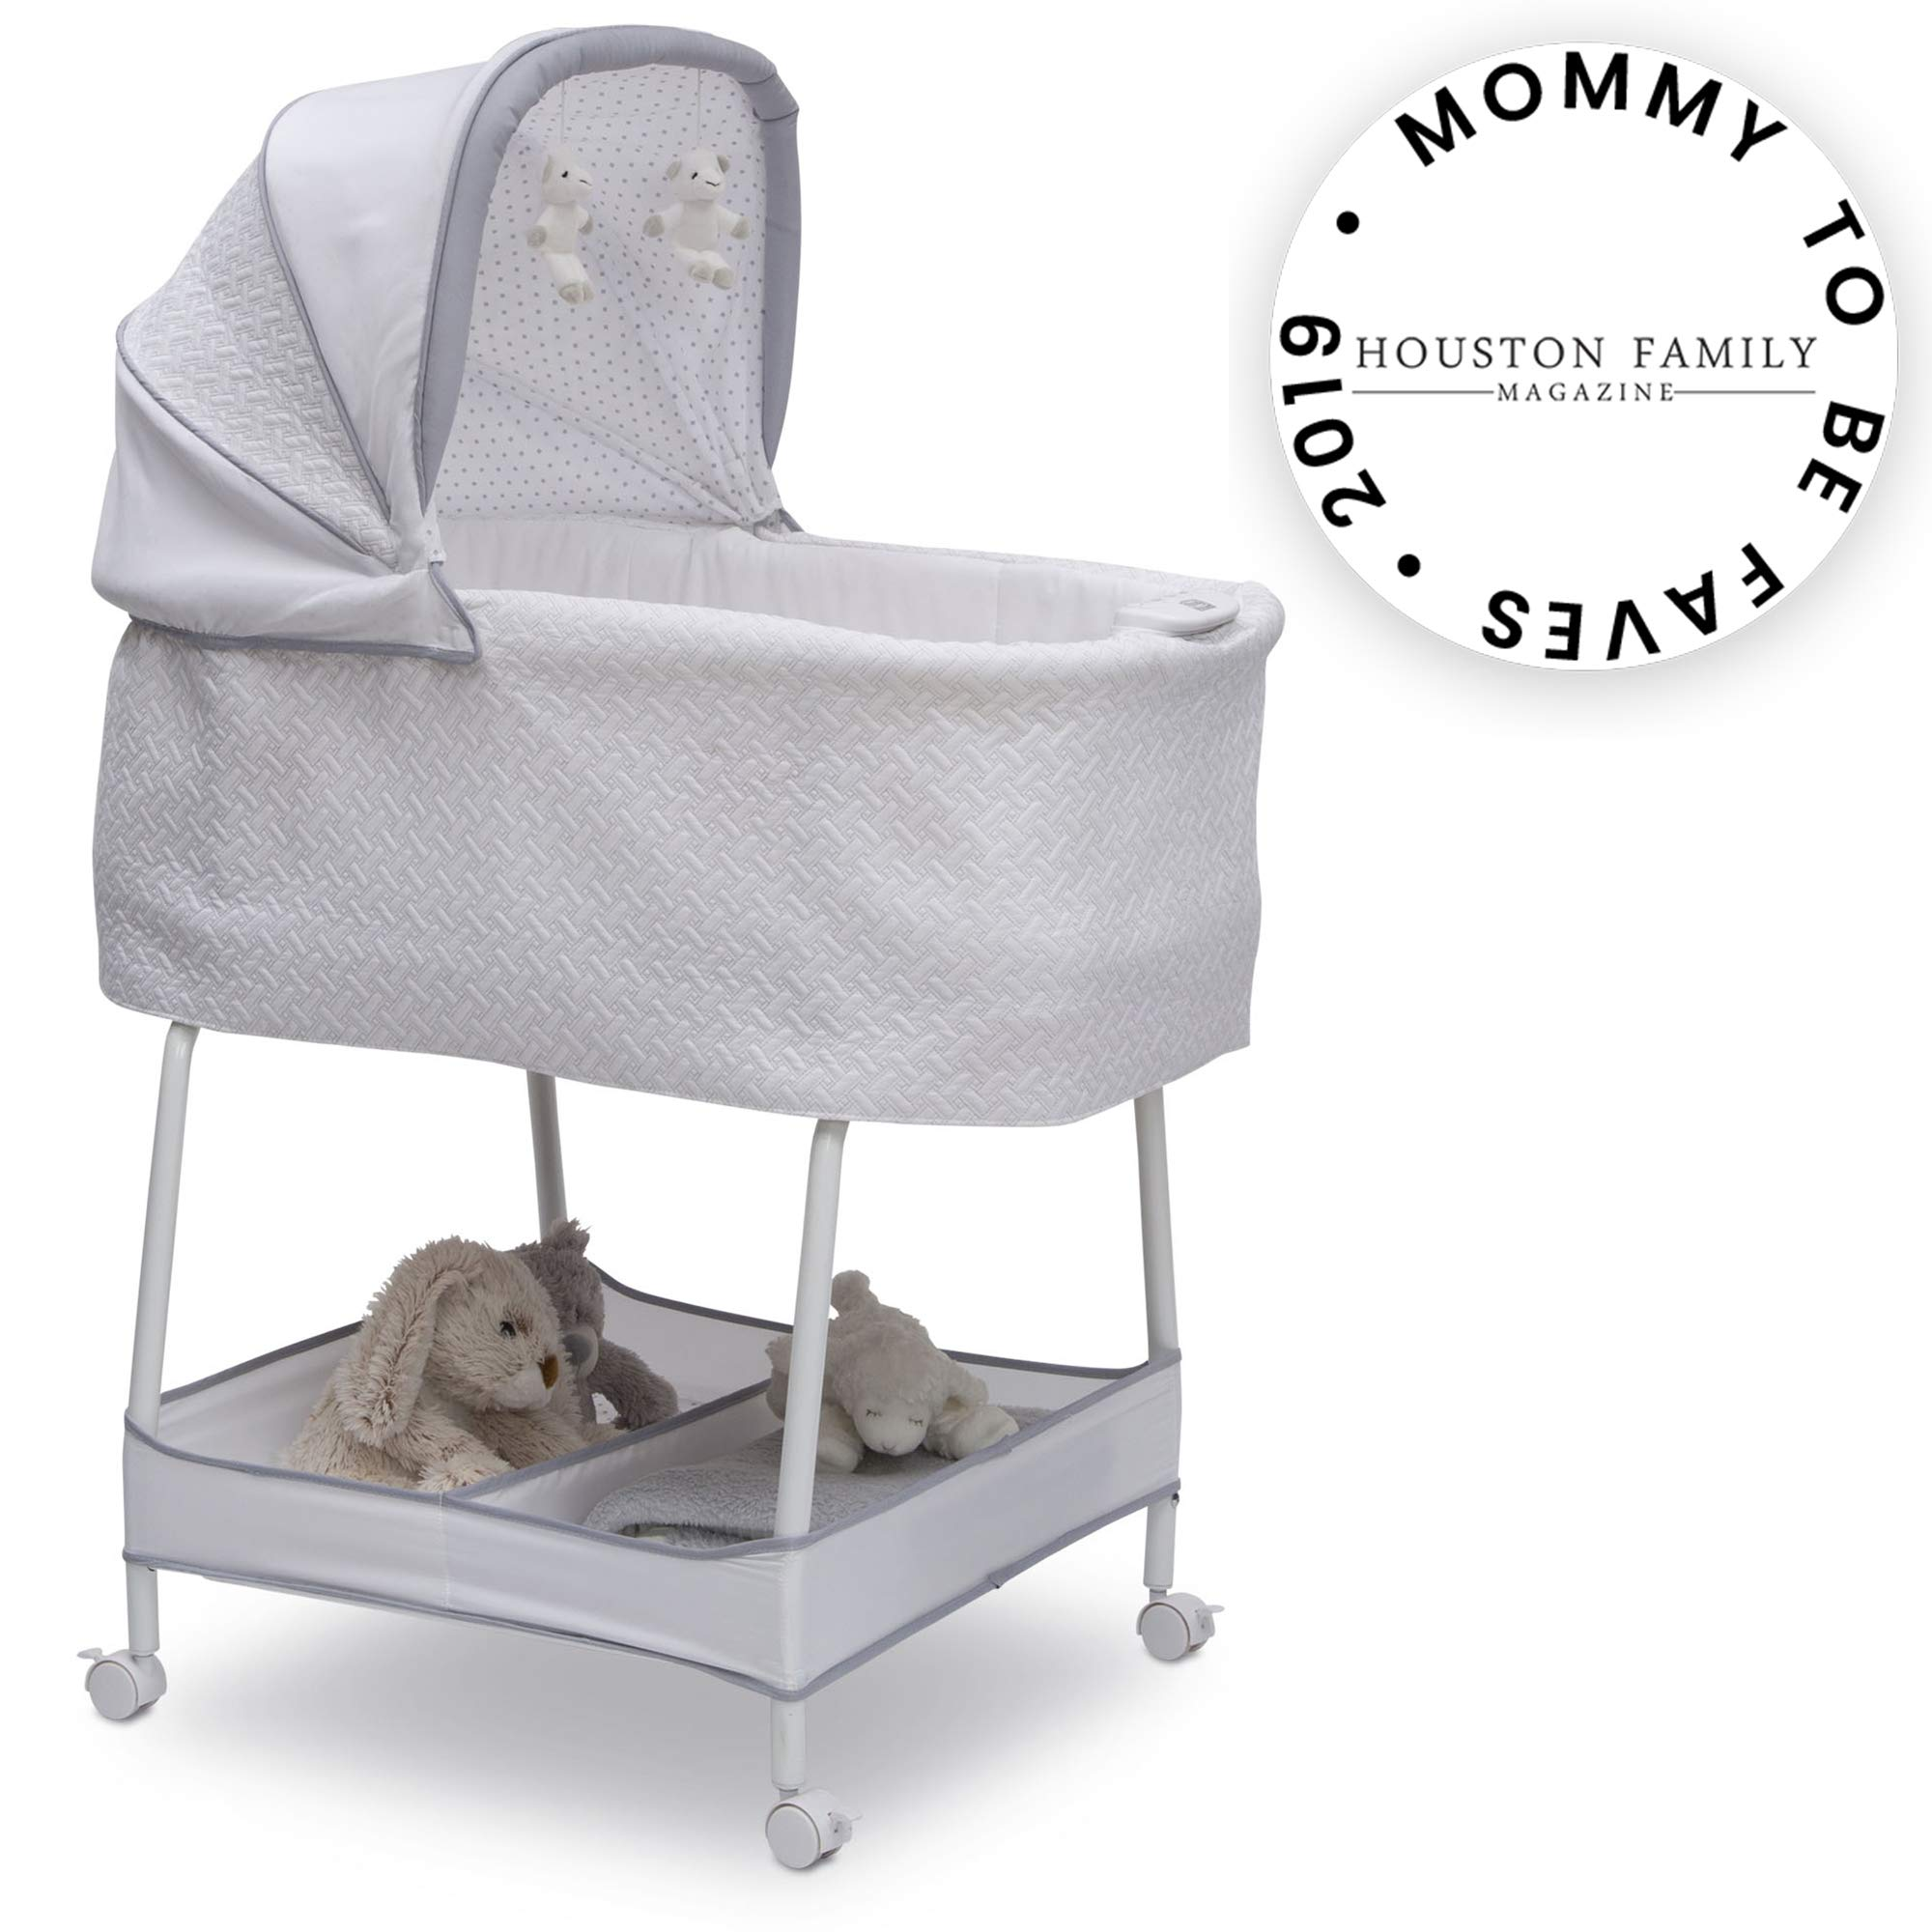 Simmons Kids Silent Auto Gliding Elite Bassinet, Basketweave by Simmons Kids